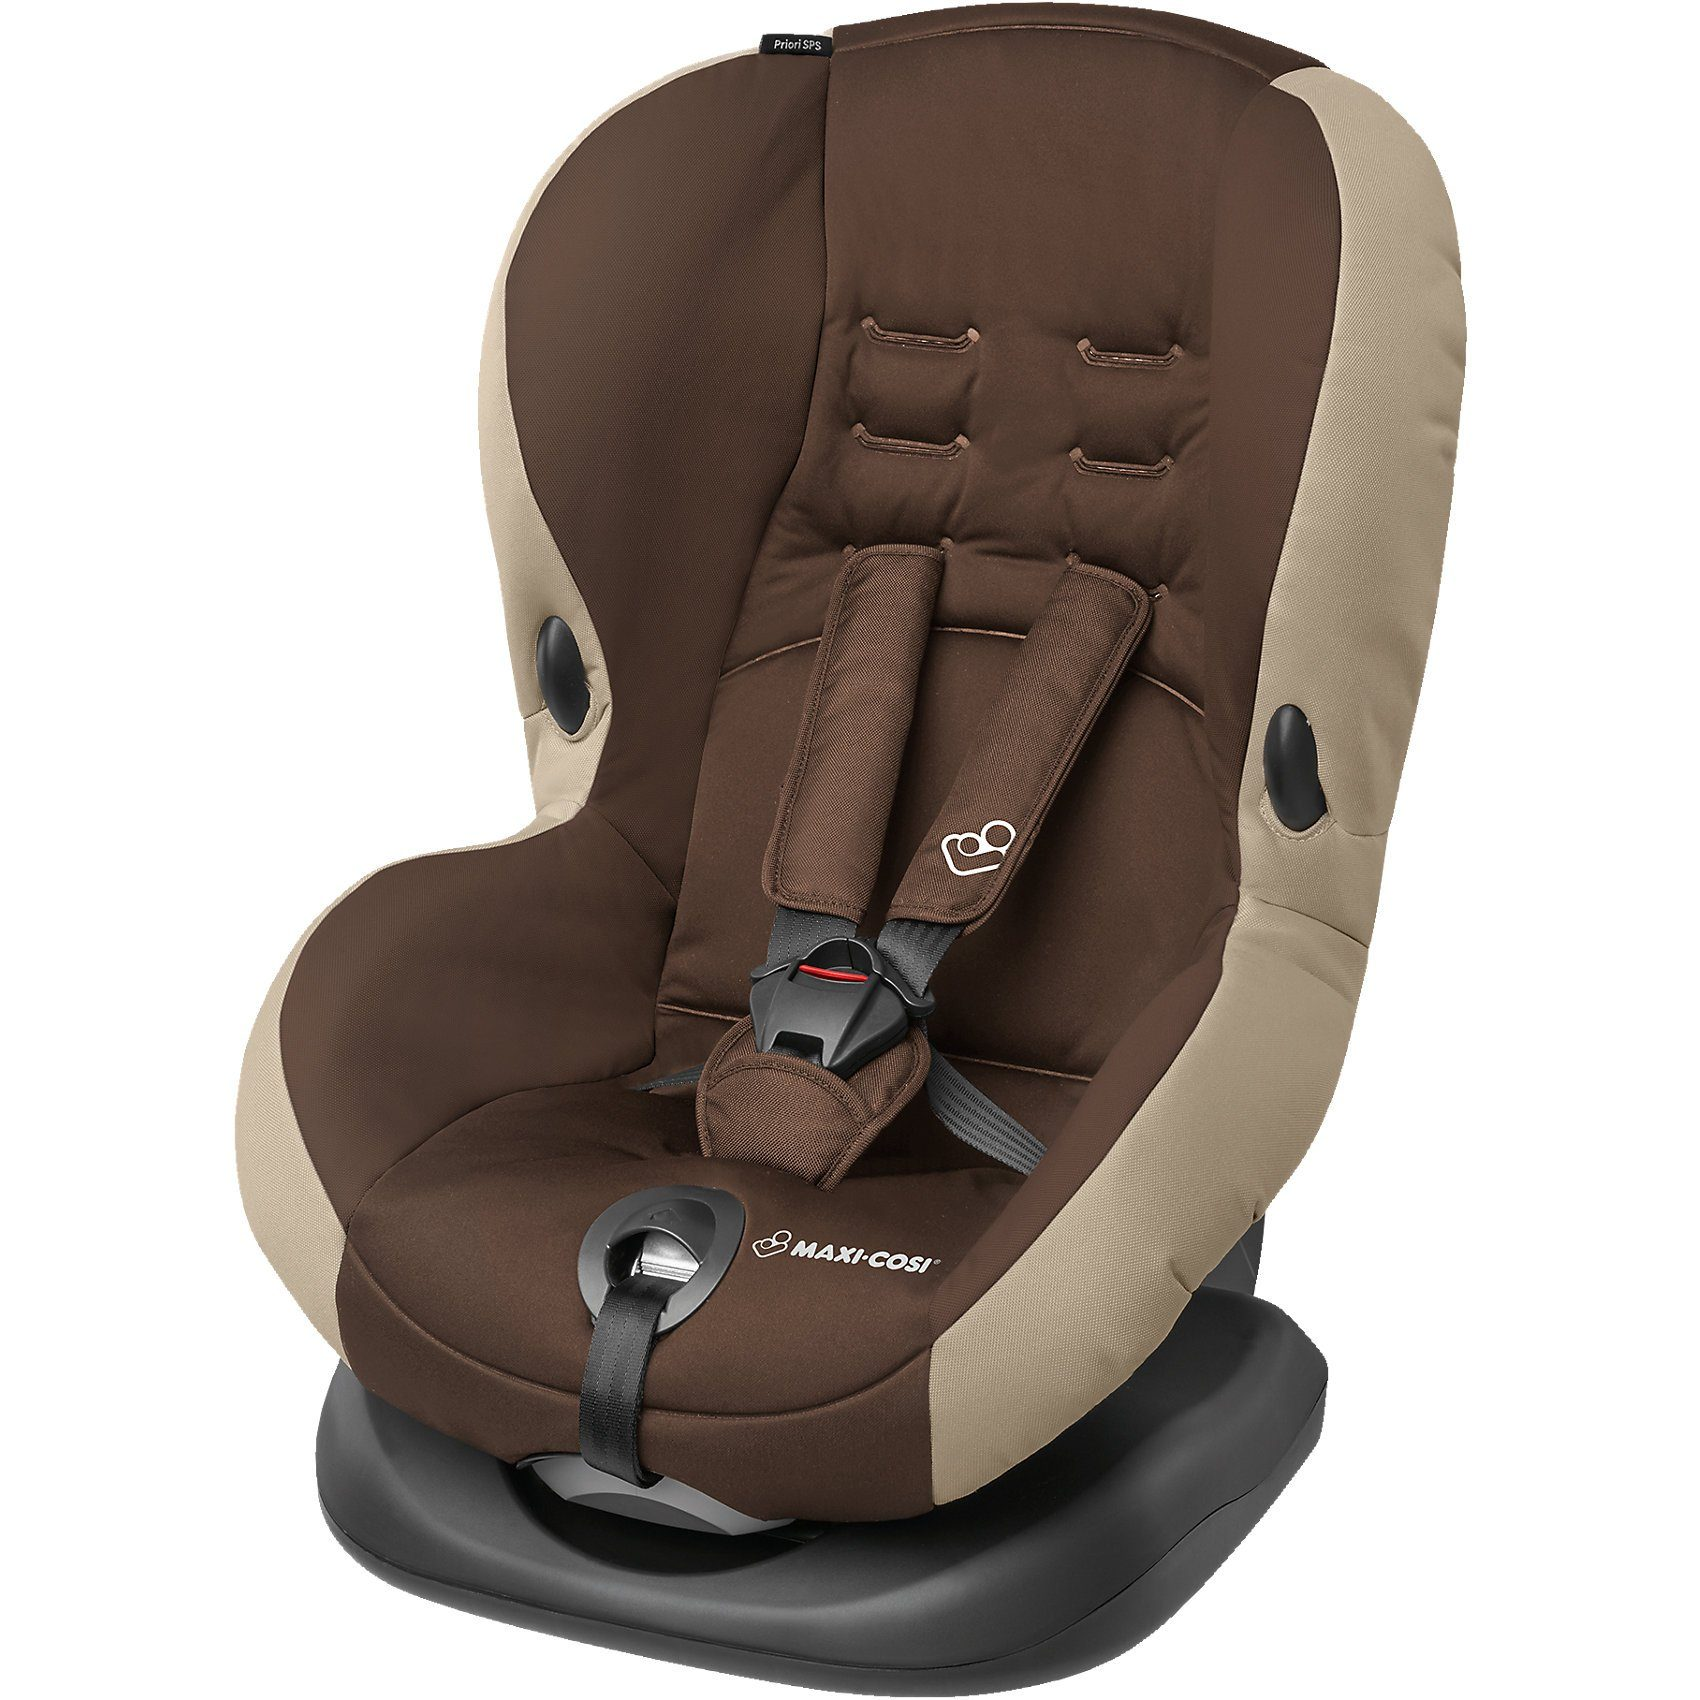 Maxi-Cosi Auto-Kindersitz Priori SPS+, Oak Brown, 2017